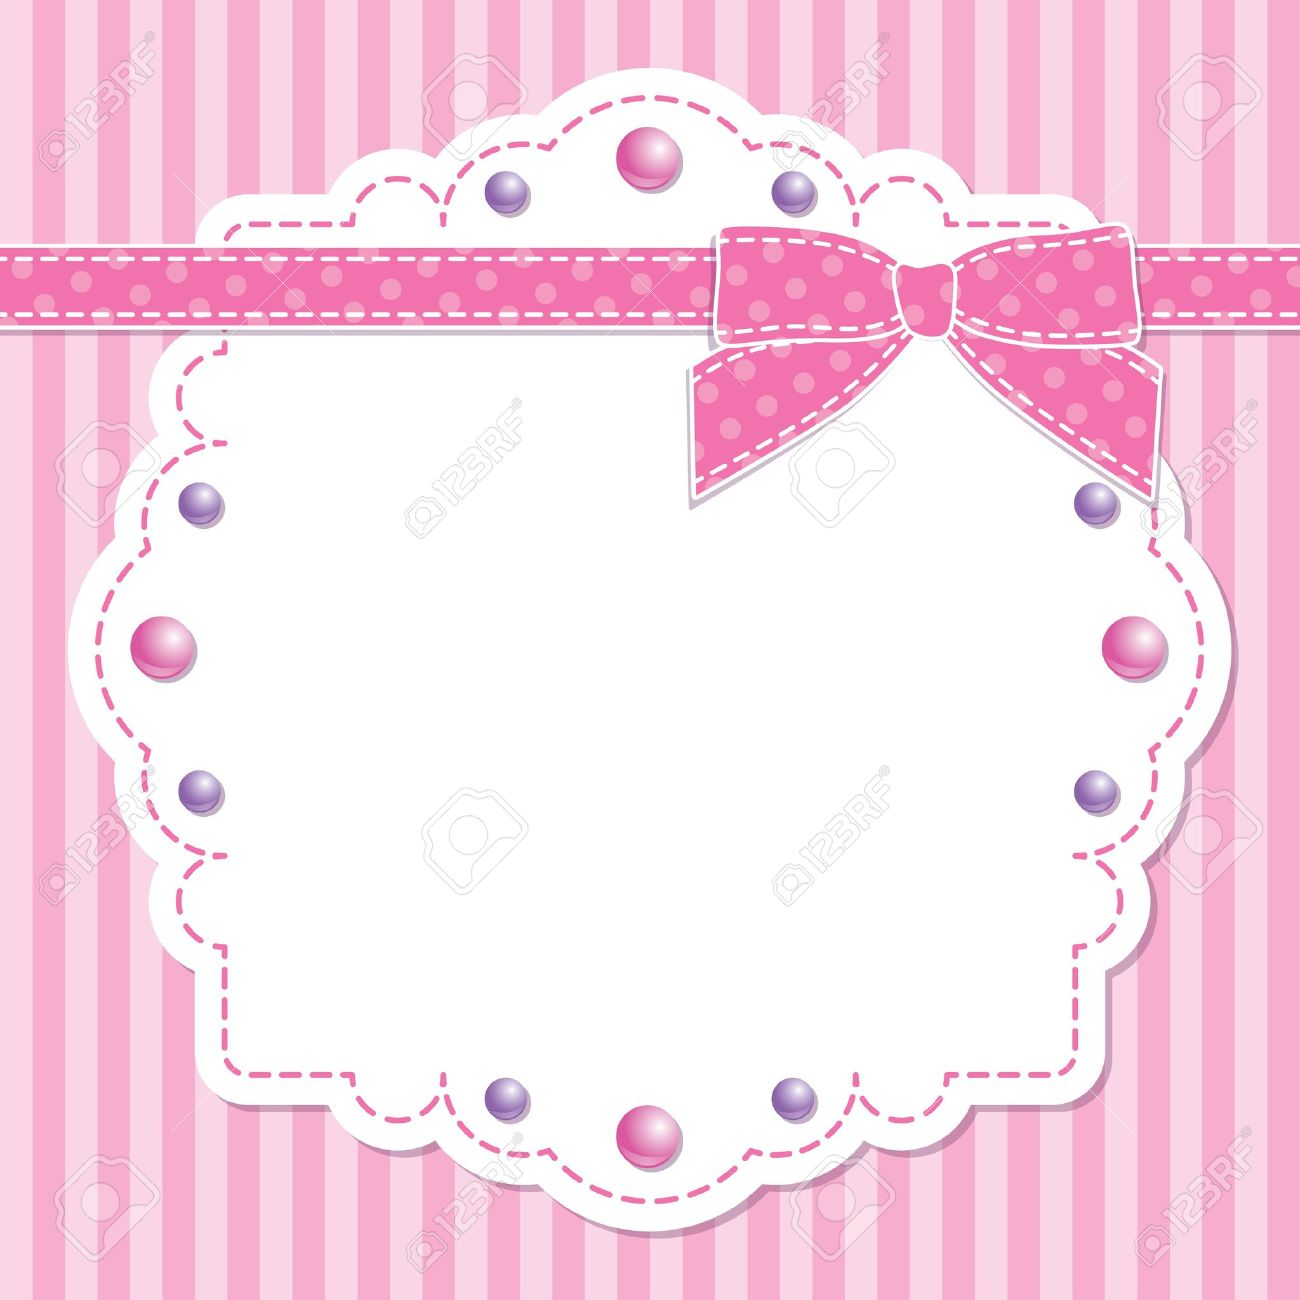 pink frame with bow and beads on striped background Stock Vector - 13826191